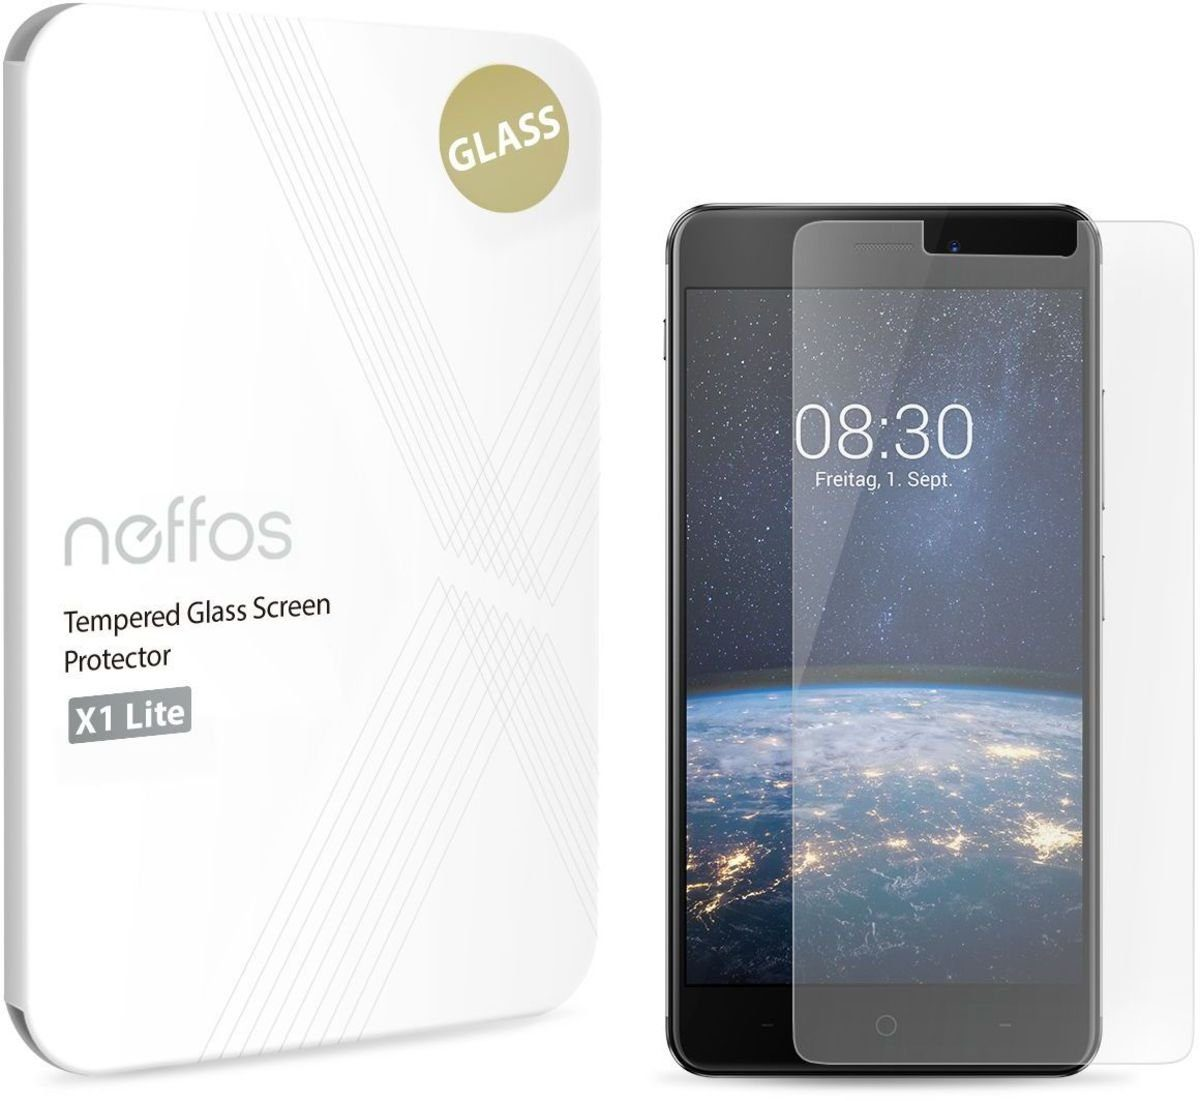 Neffos Folie »X1 Lite, Glass Screen Protector«